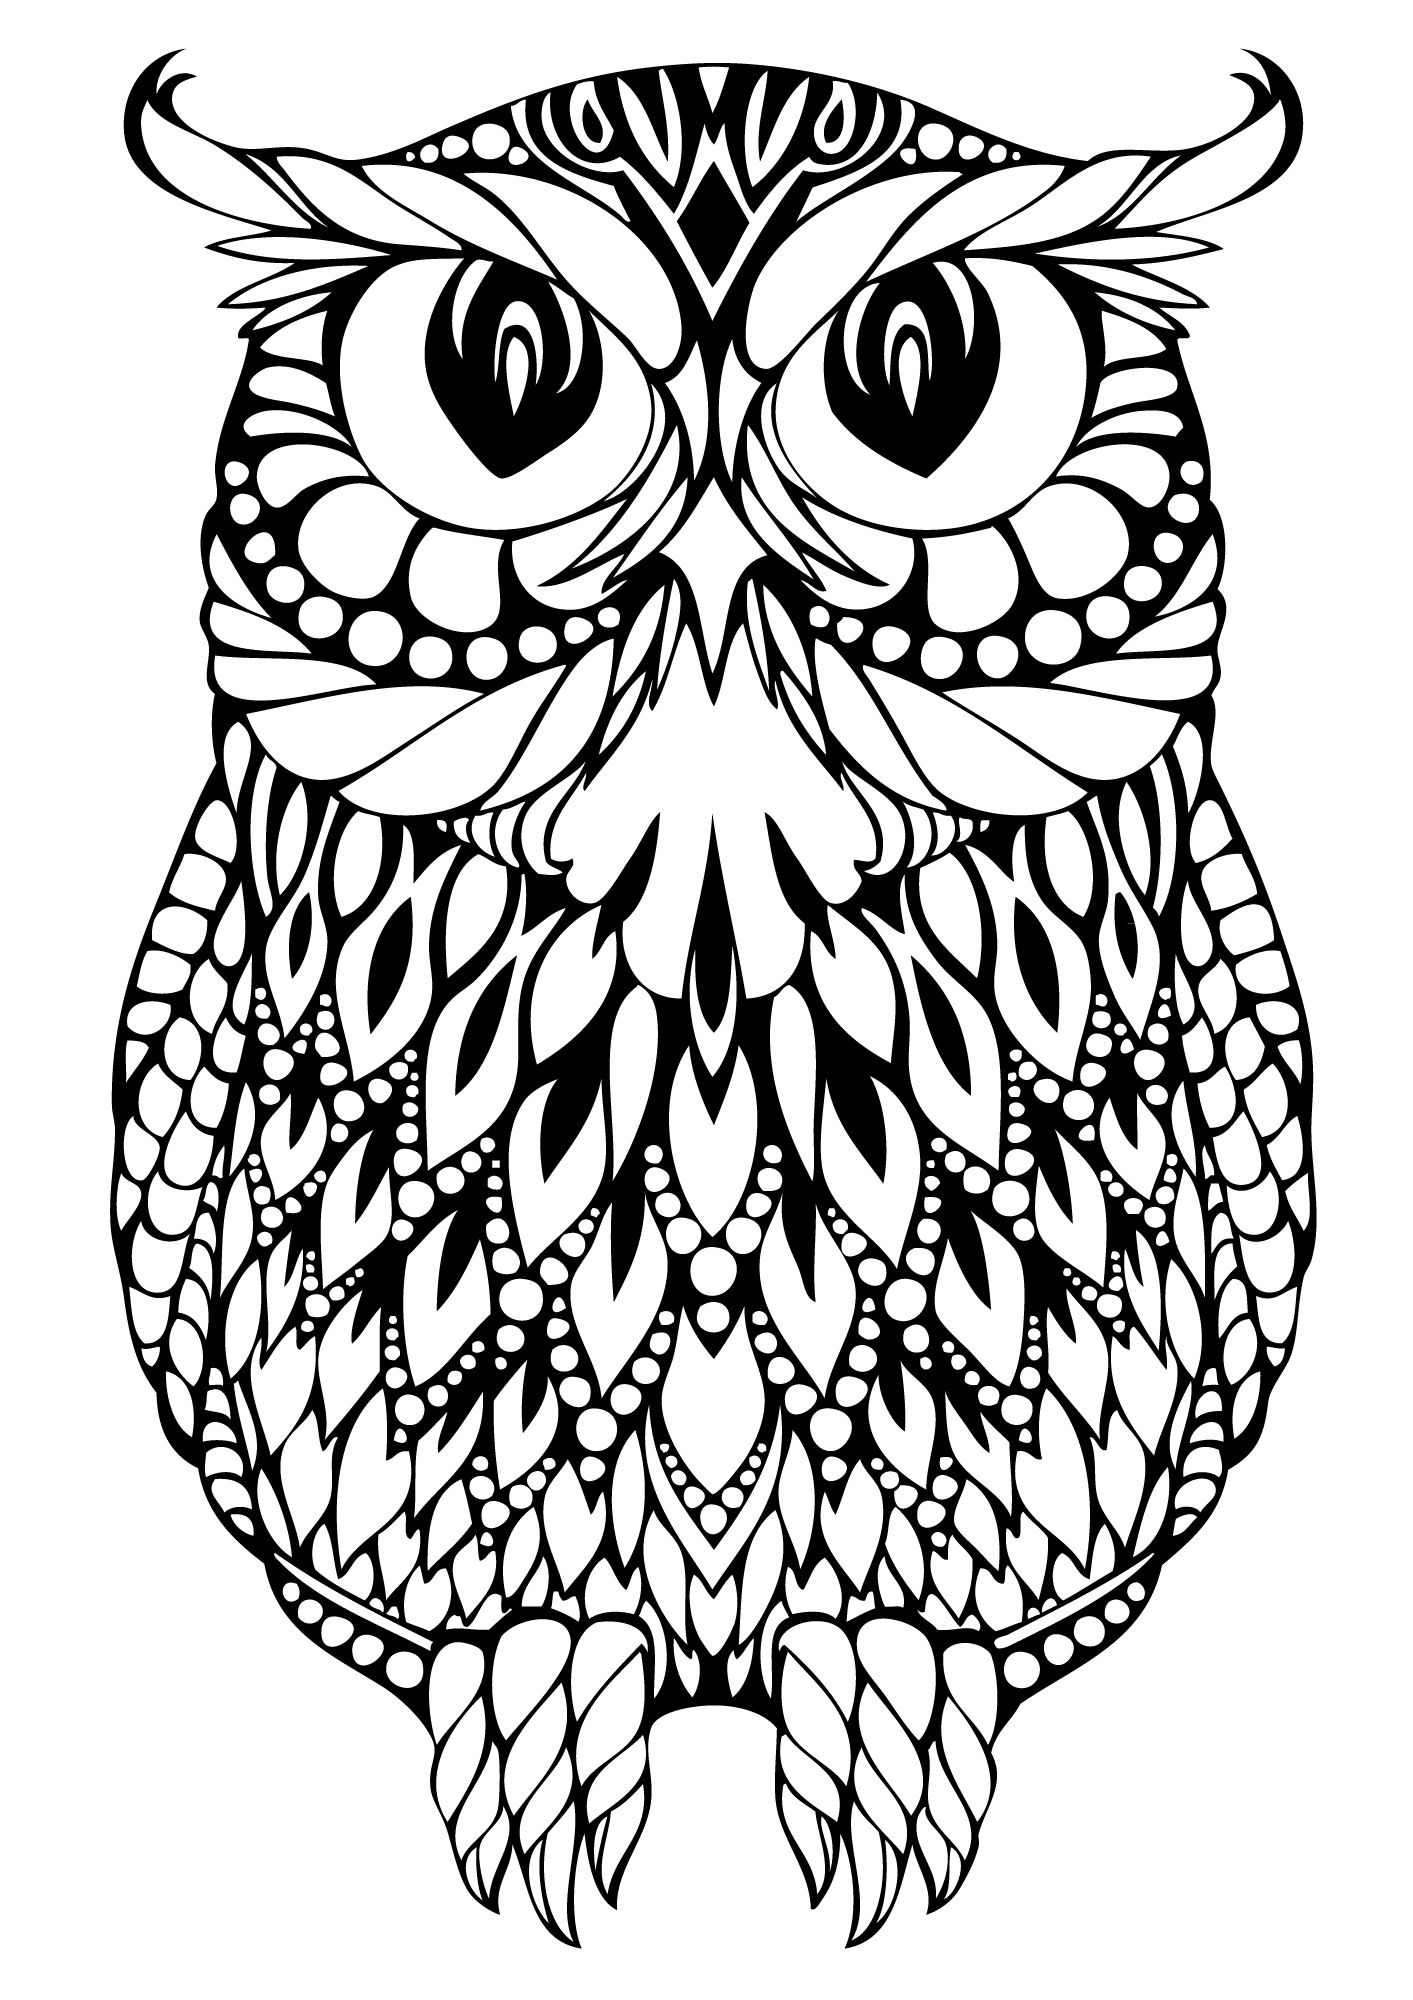 Owl Coloring Page Owl Coloring Pages Animal Coloring Pages